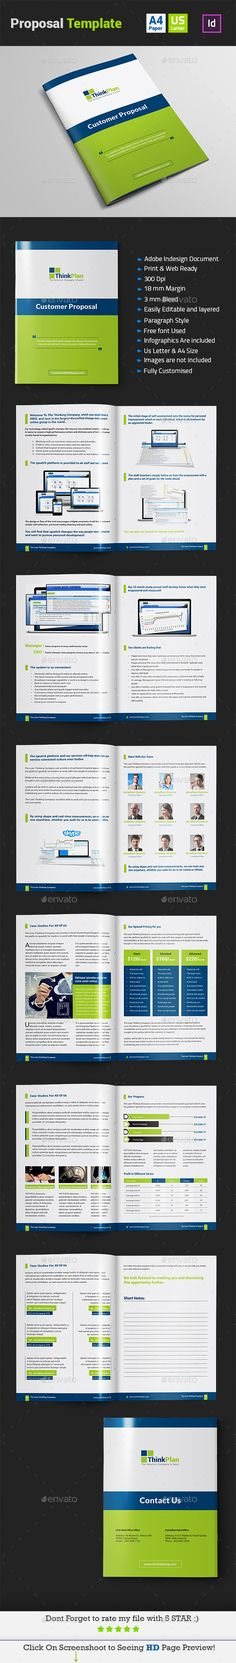 Project Proposal 11774520 Template Pinterest Proposals - purchase proposal templates